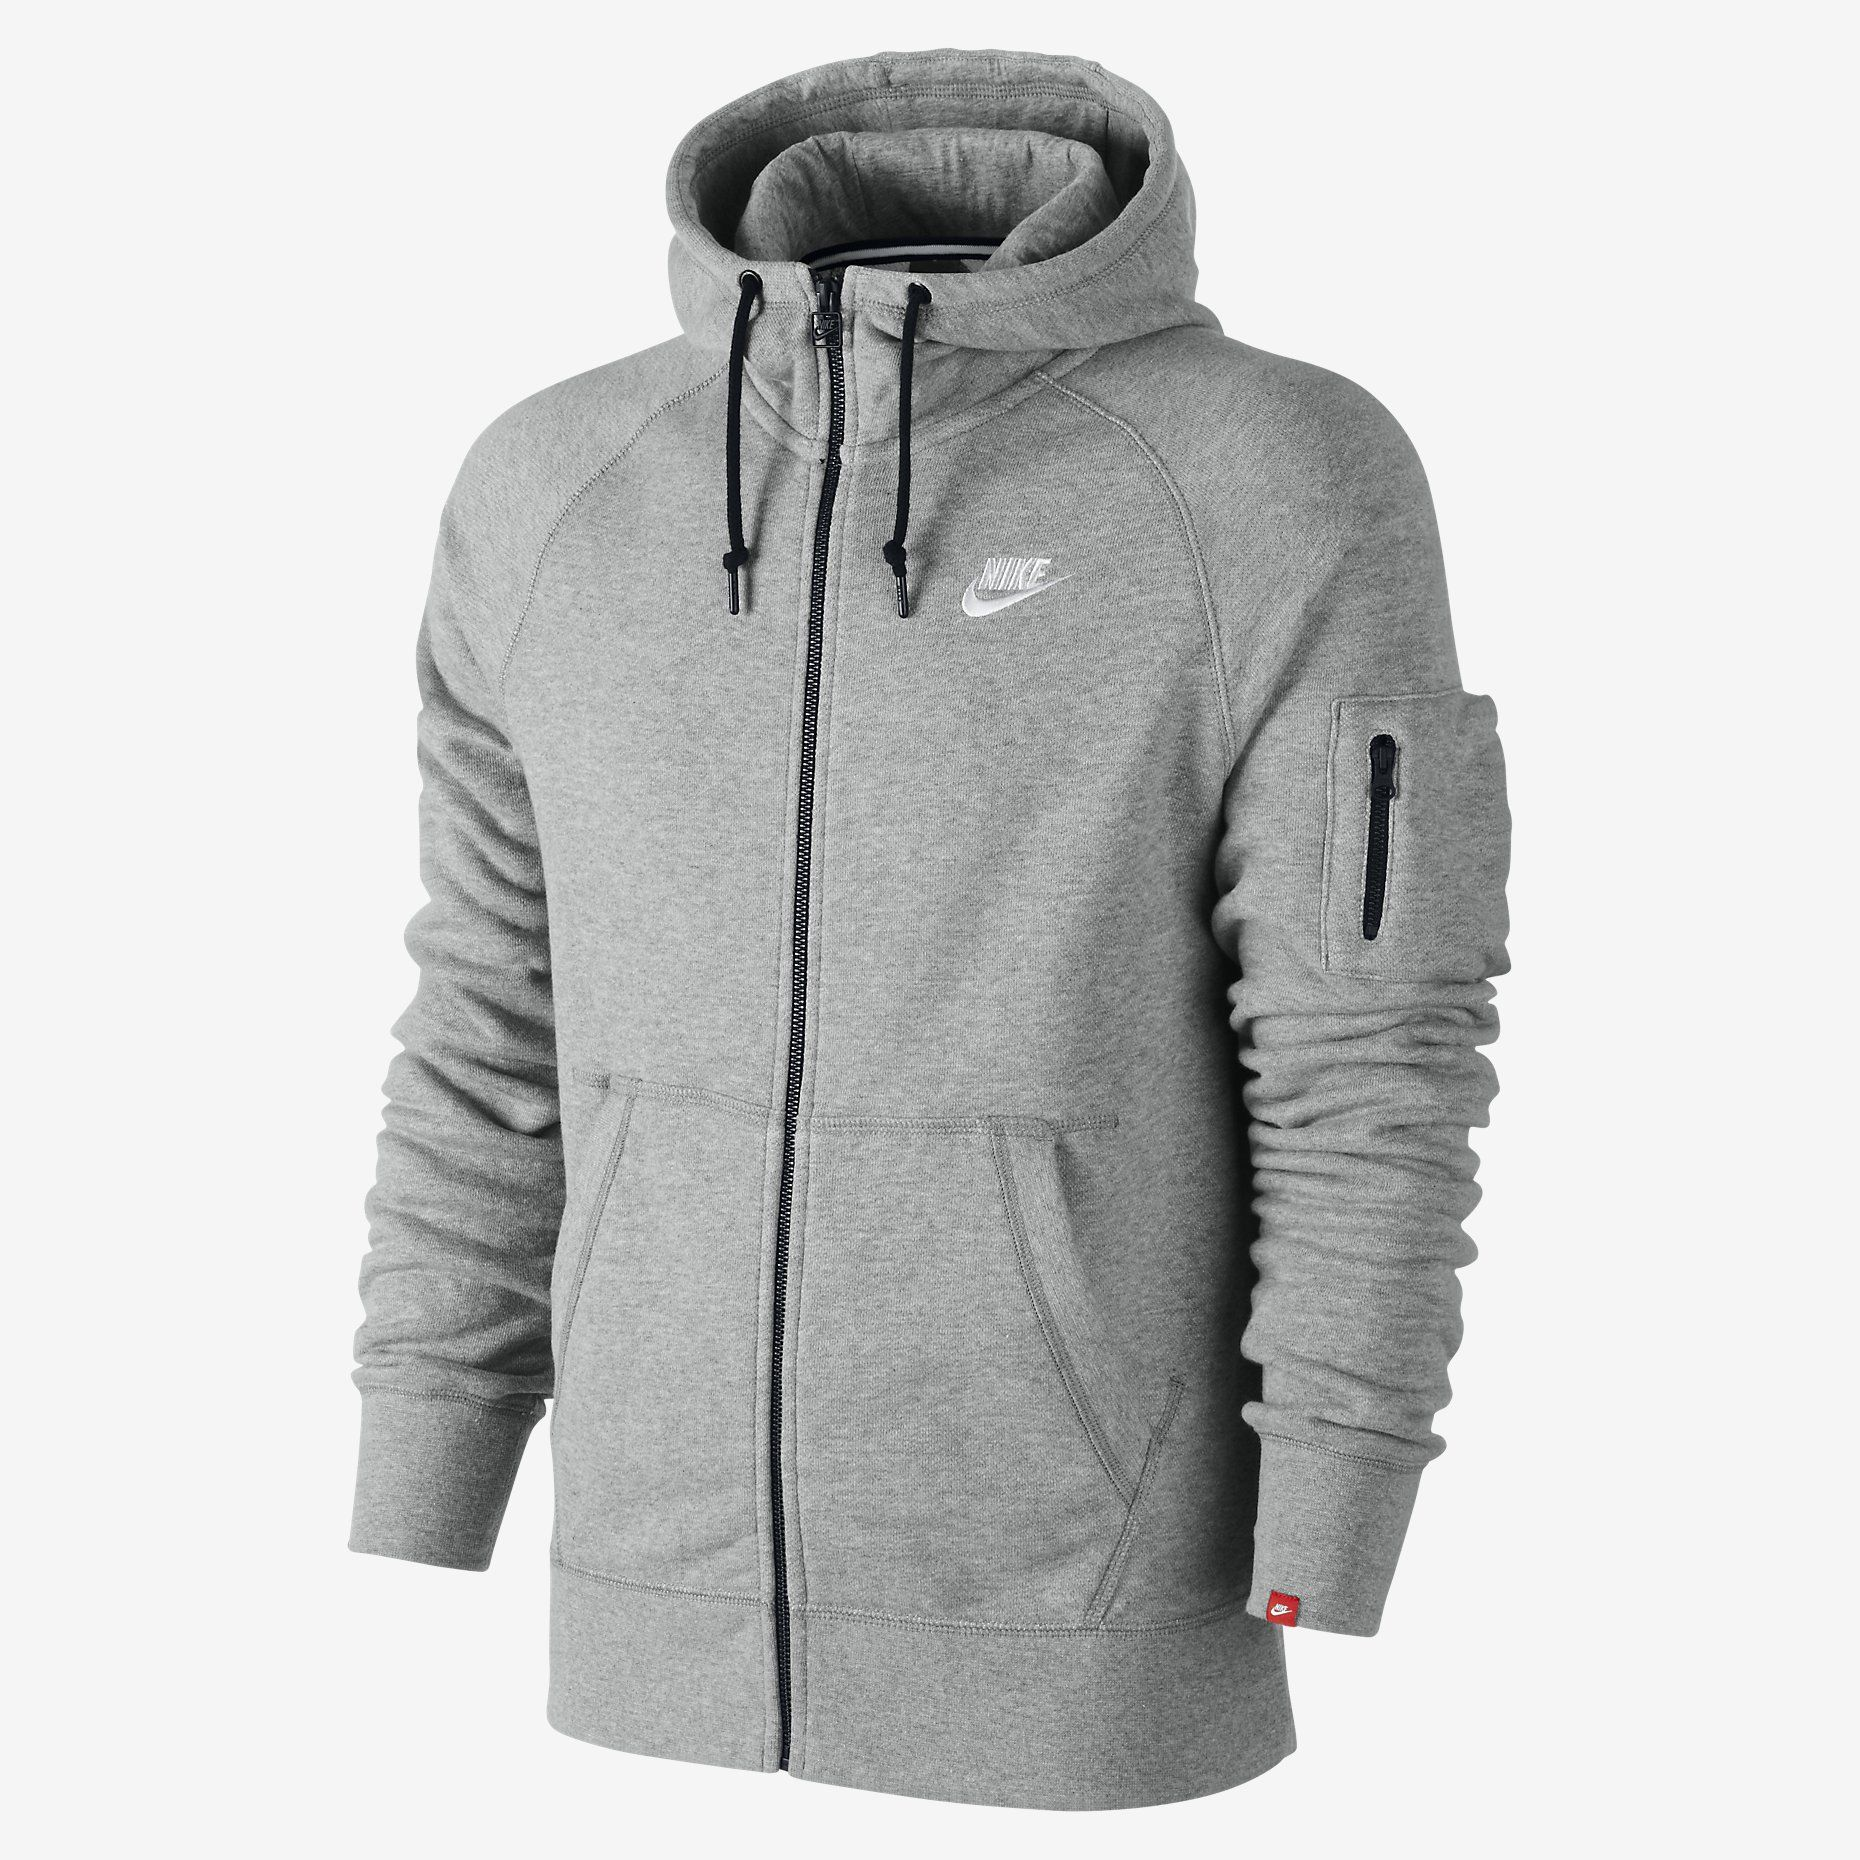 060a289552f9 Nike AW77 Intentional Men s Full-Zip Hoodie. Nike Store IE